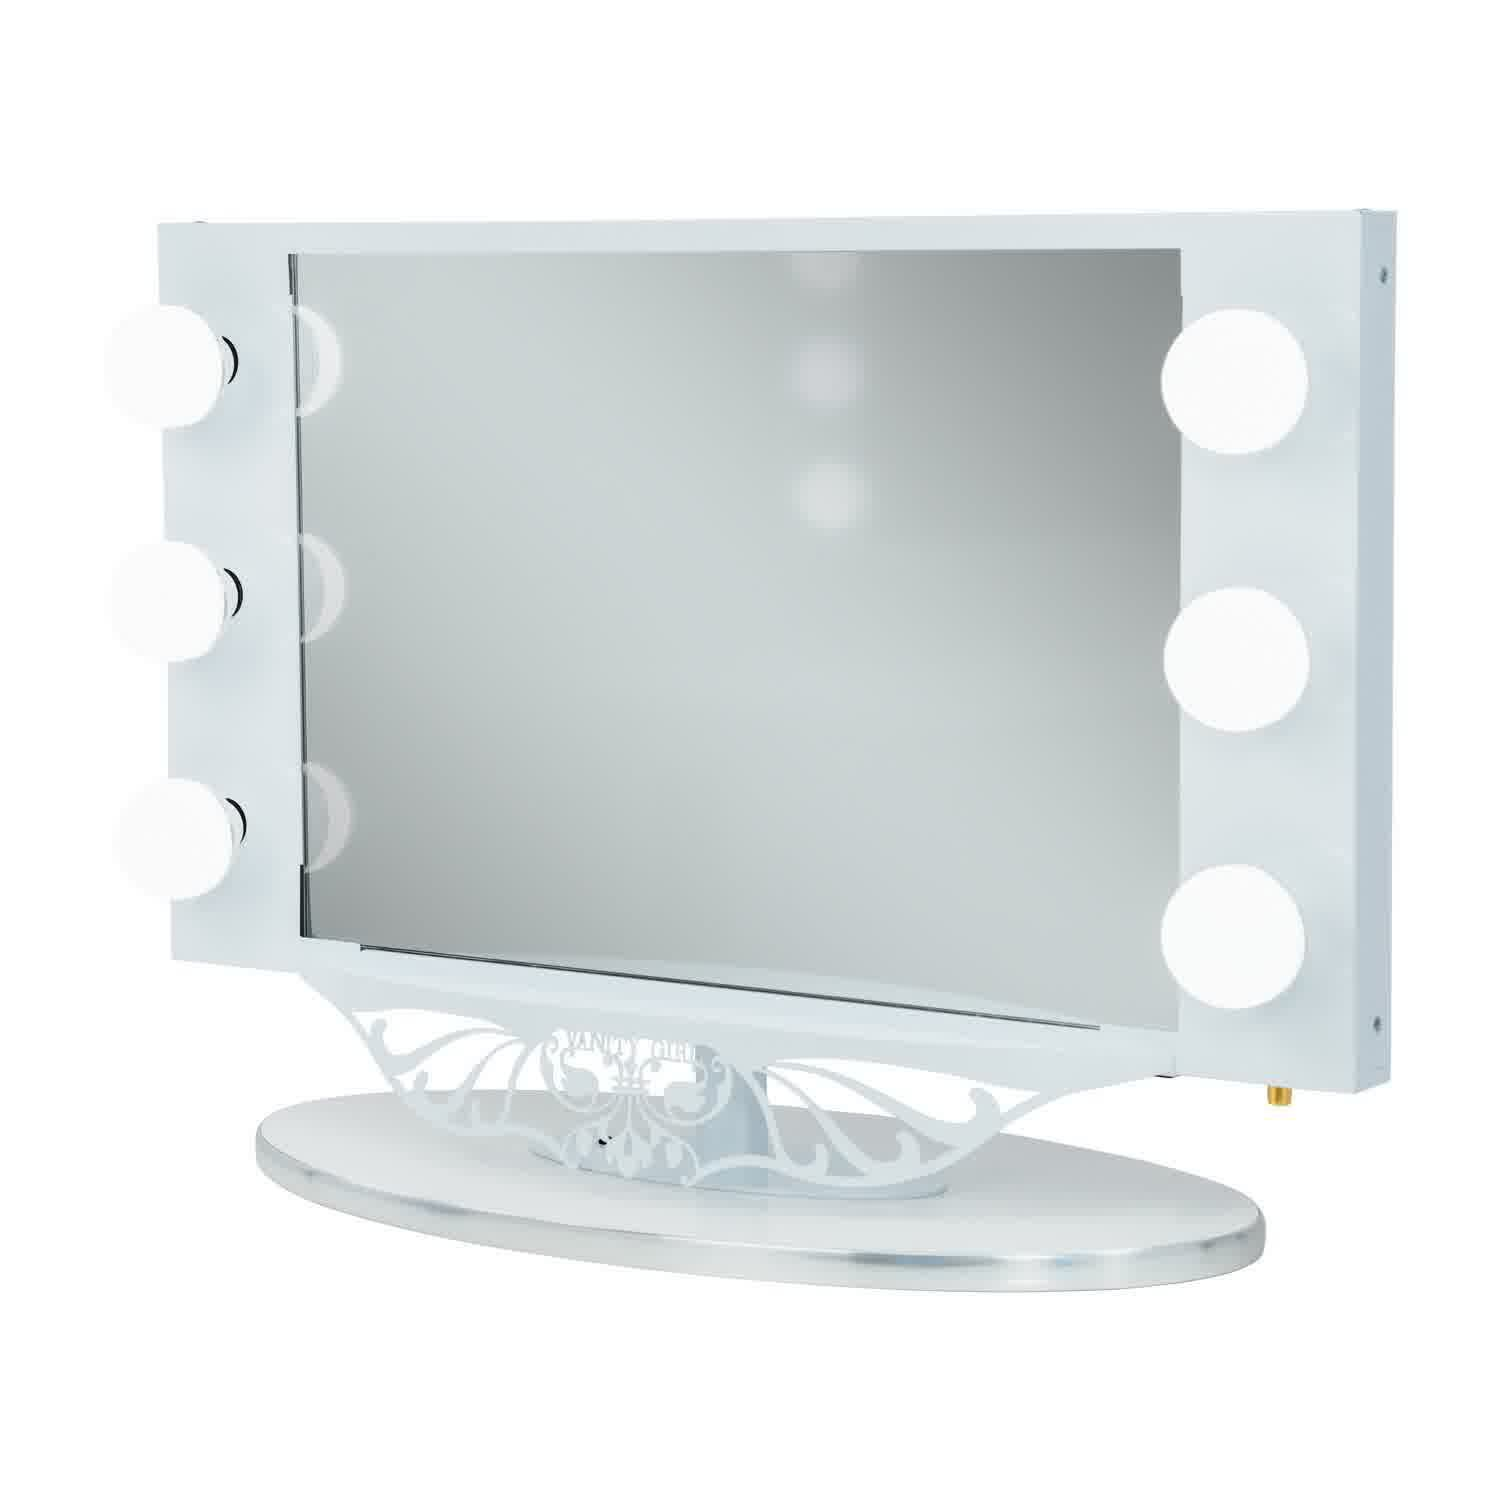 Vanity Mirror Dresser Lights : Starlet Lighted Vanity Mirror in Simple Frame Design